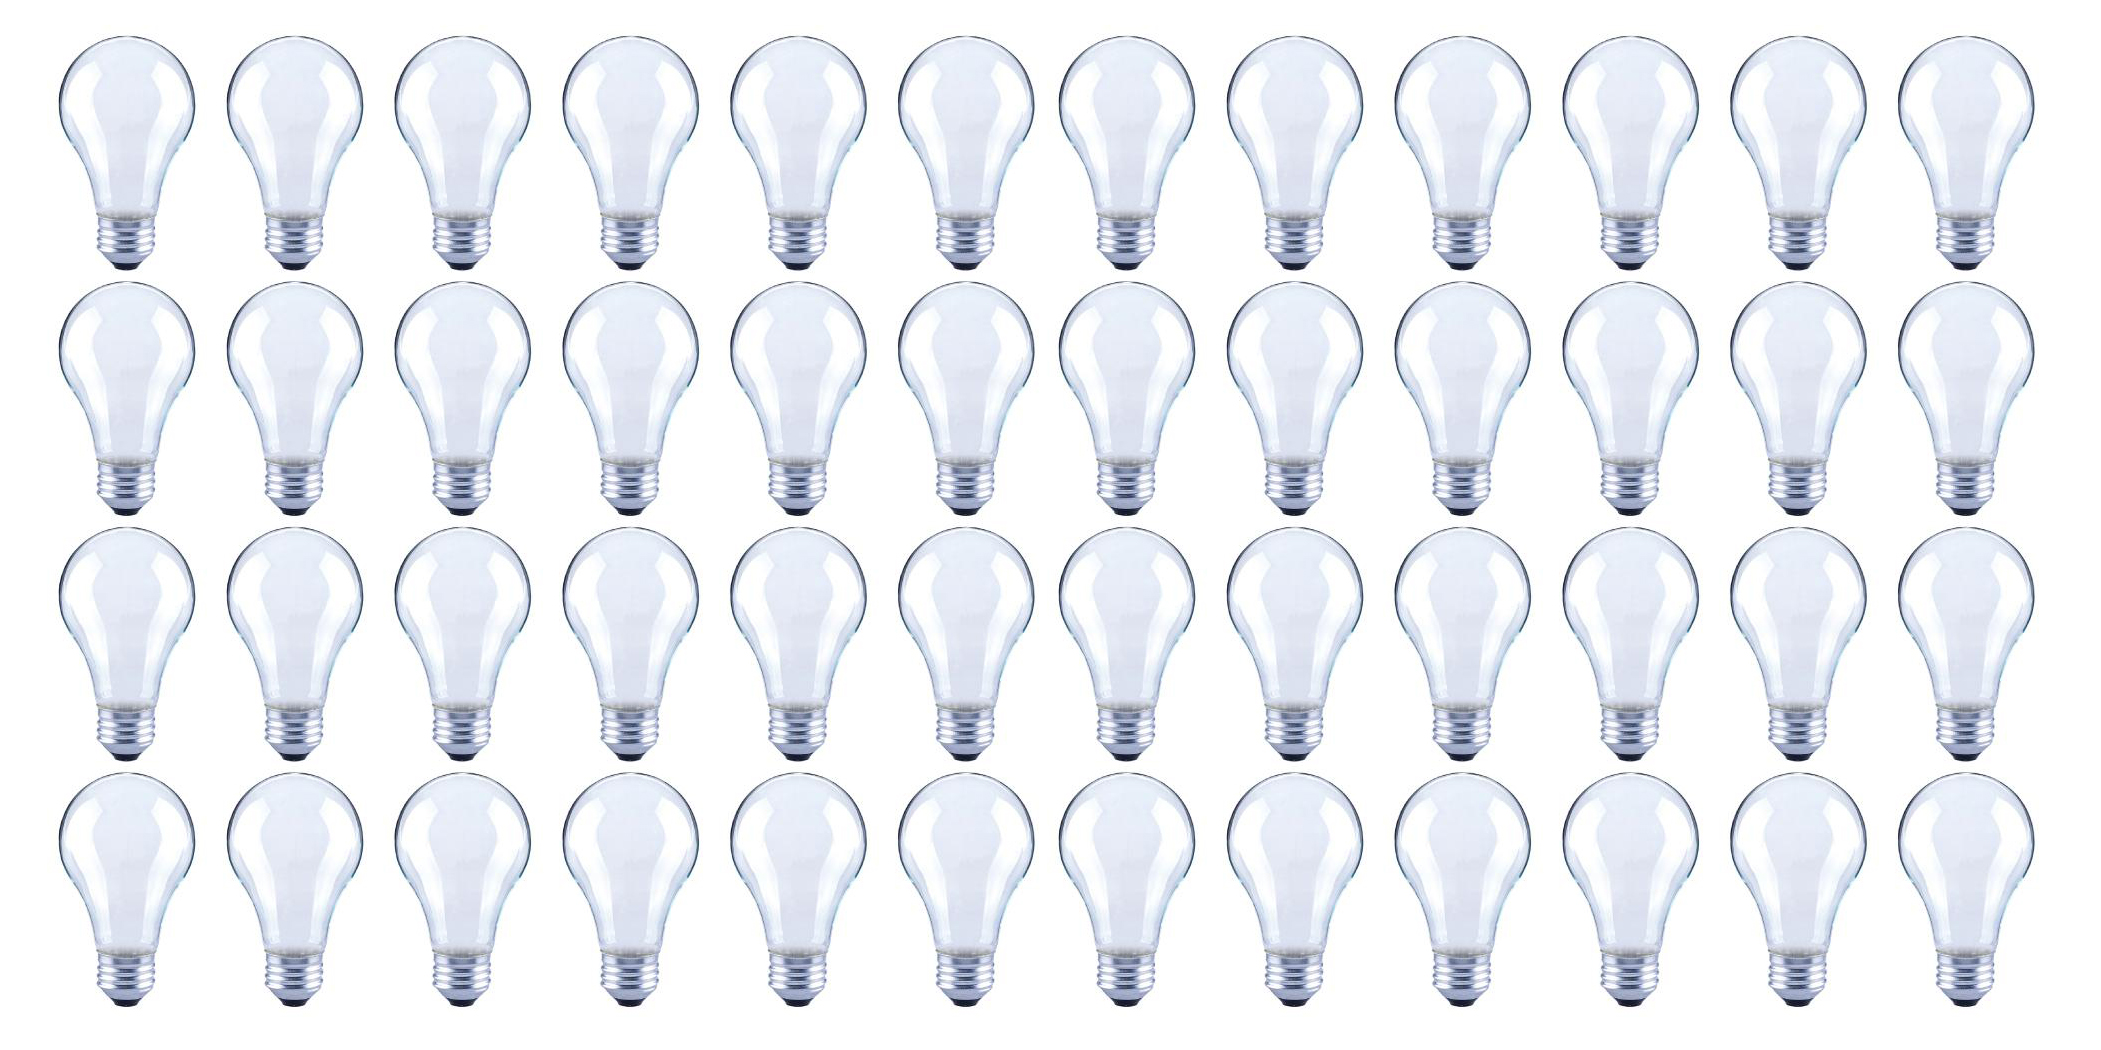 Today's best Green Deals include dimmable LED bulbs, outdoor solar lights and more